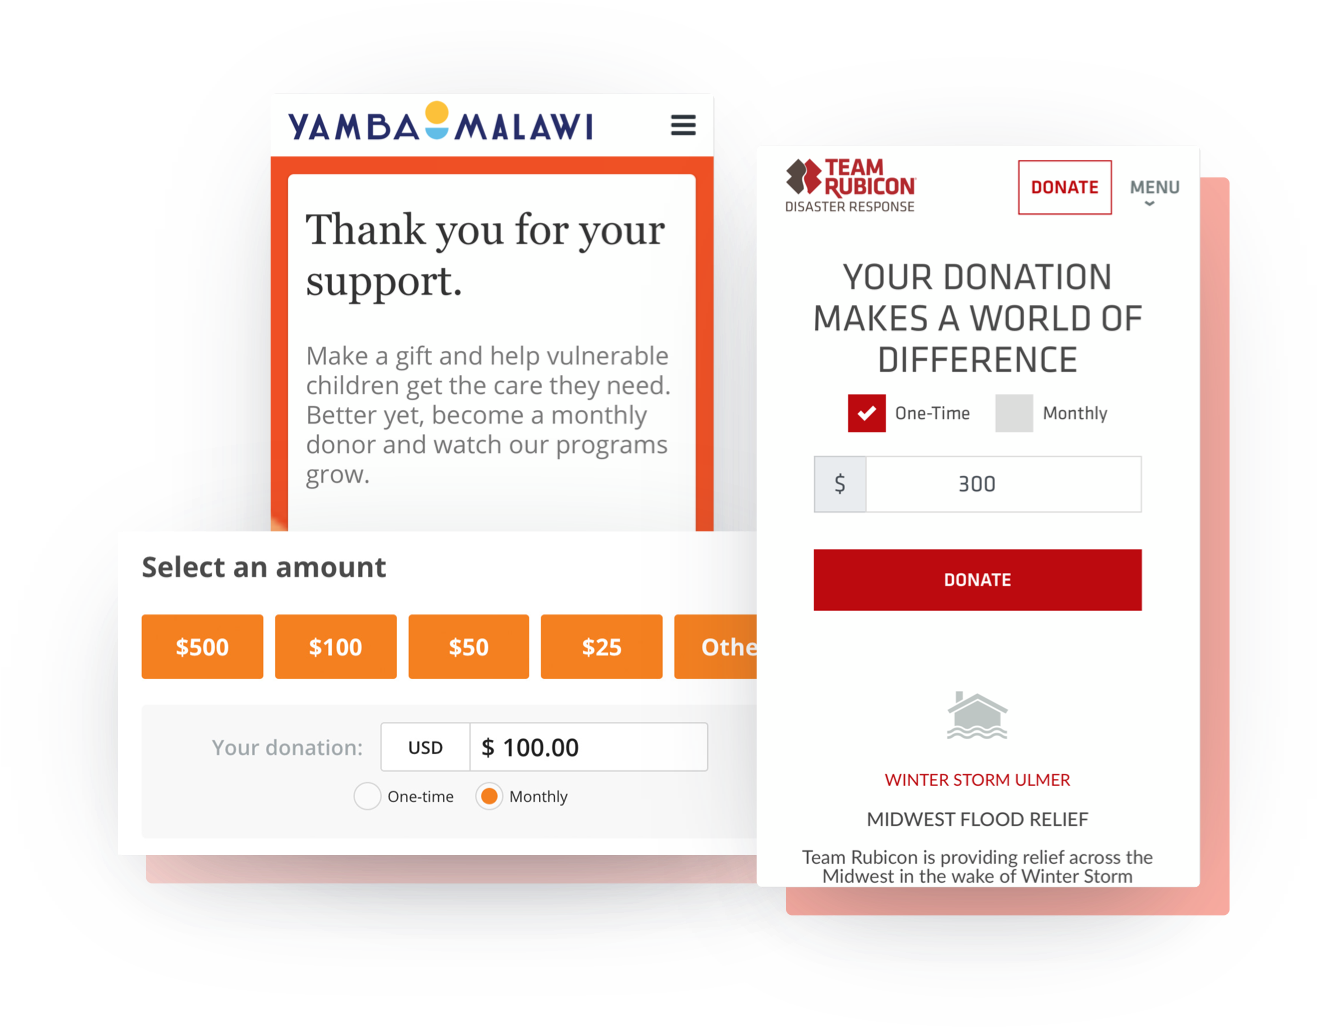 Mobile-optimized crowdfunding page example that showcases preset custom donation amounts & suggested donation amounts